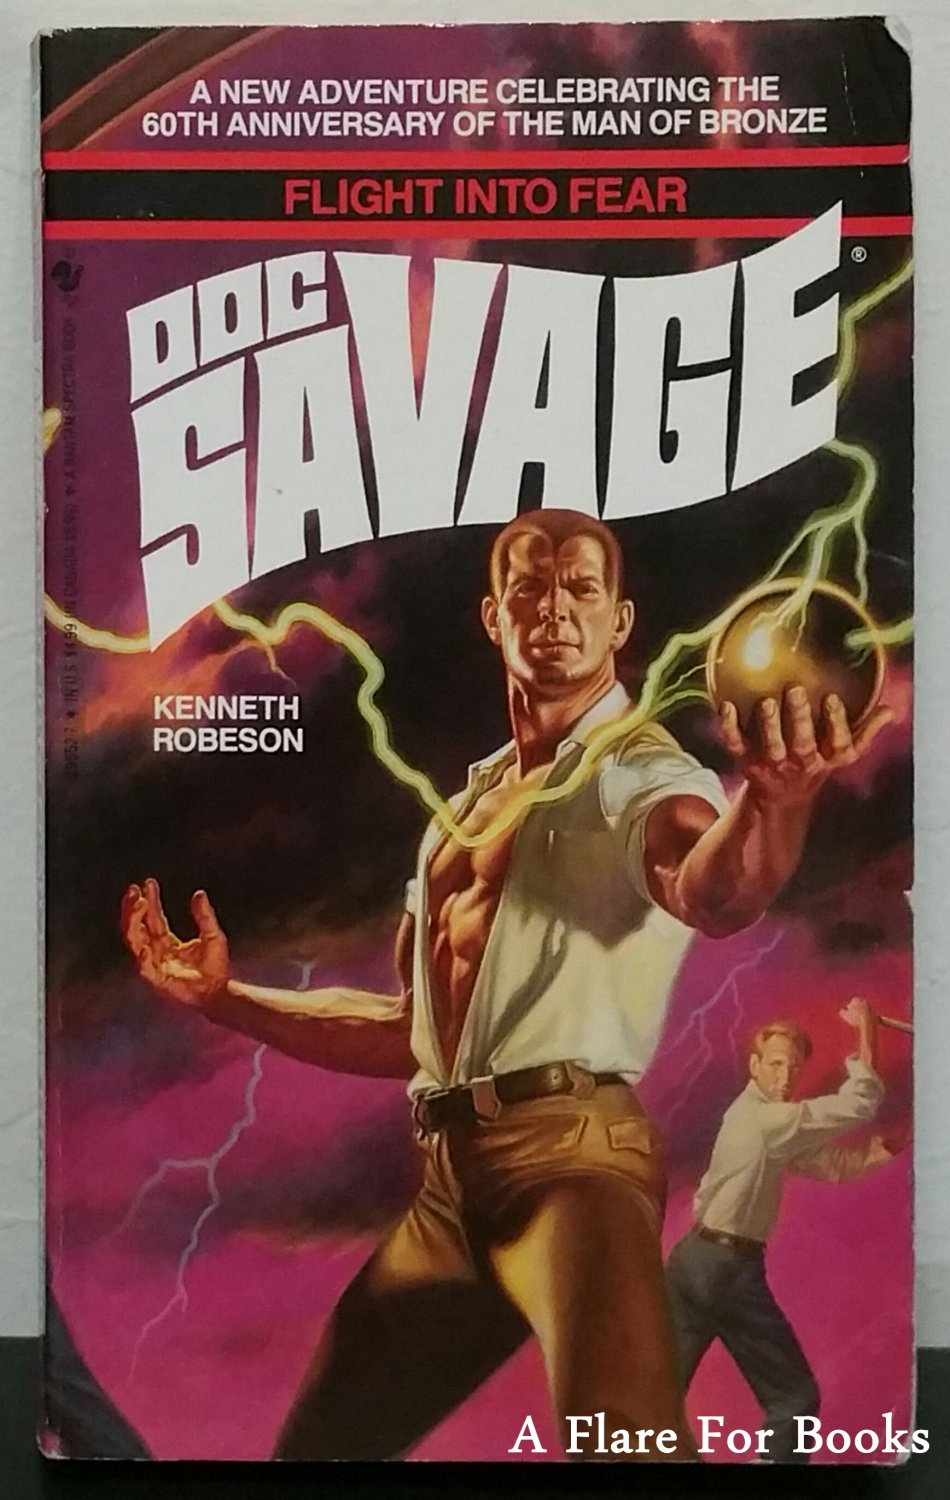 Doc Savage: Flight Into Fear by Kenneth Robeson